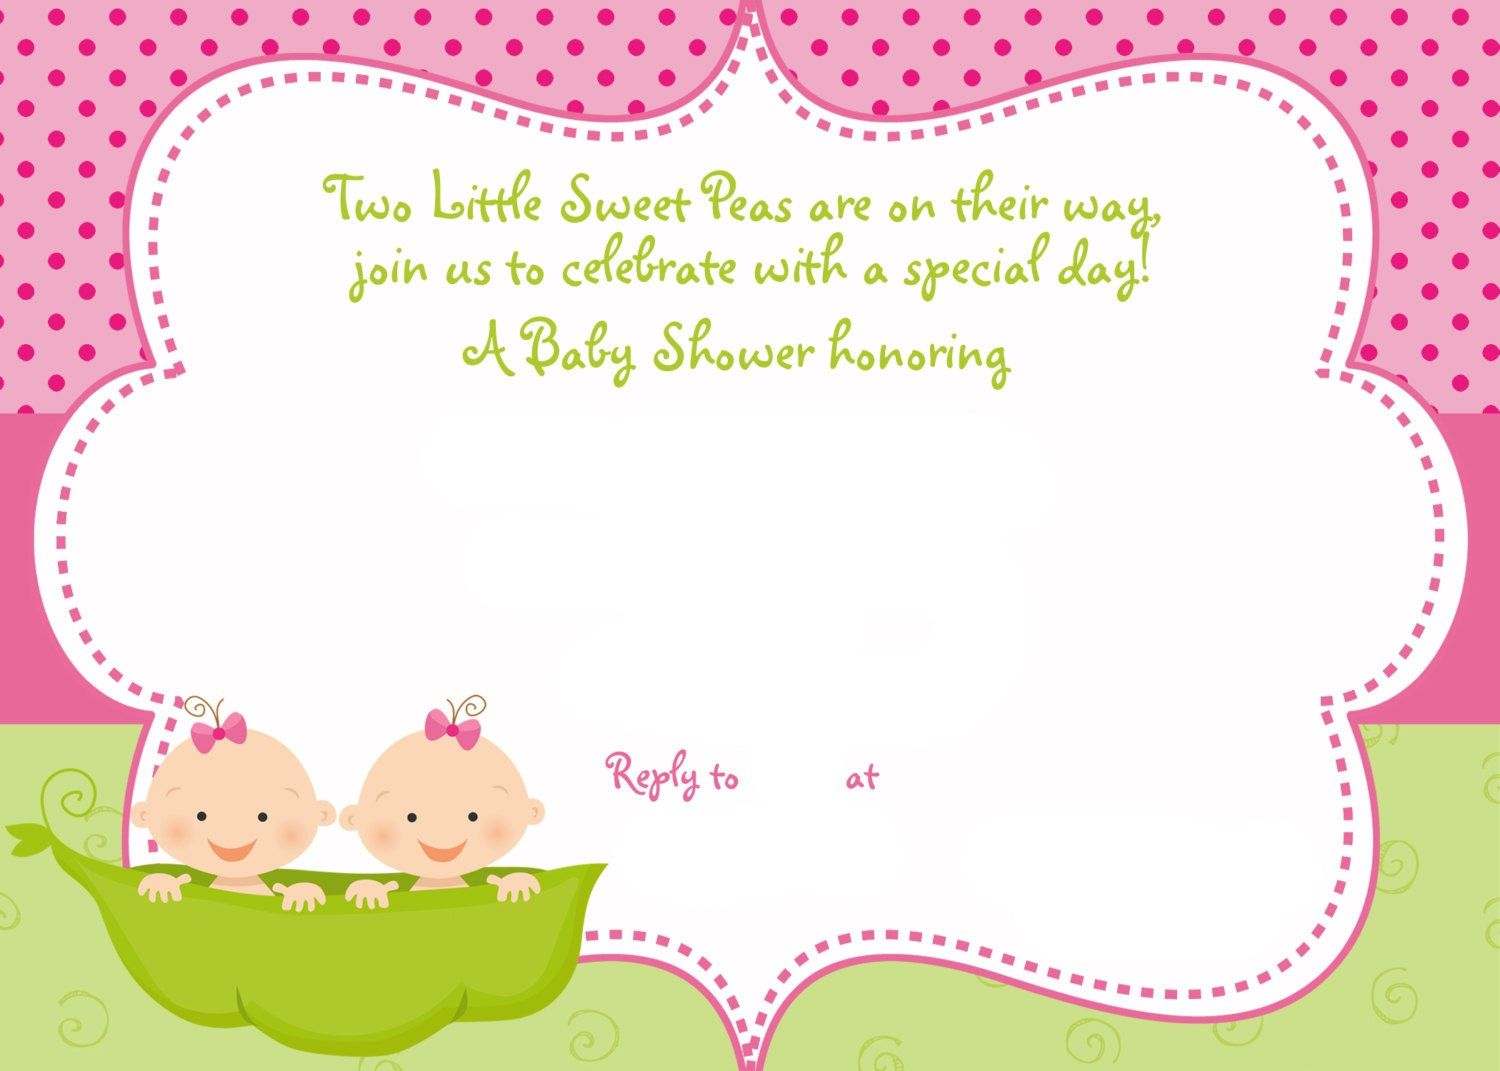 Cool Free Printable Twins Baby Shower Invitation Ideas   Free Baby - Free Printable Twin Baby Shower Invitations